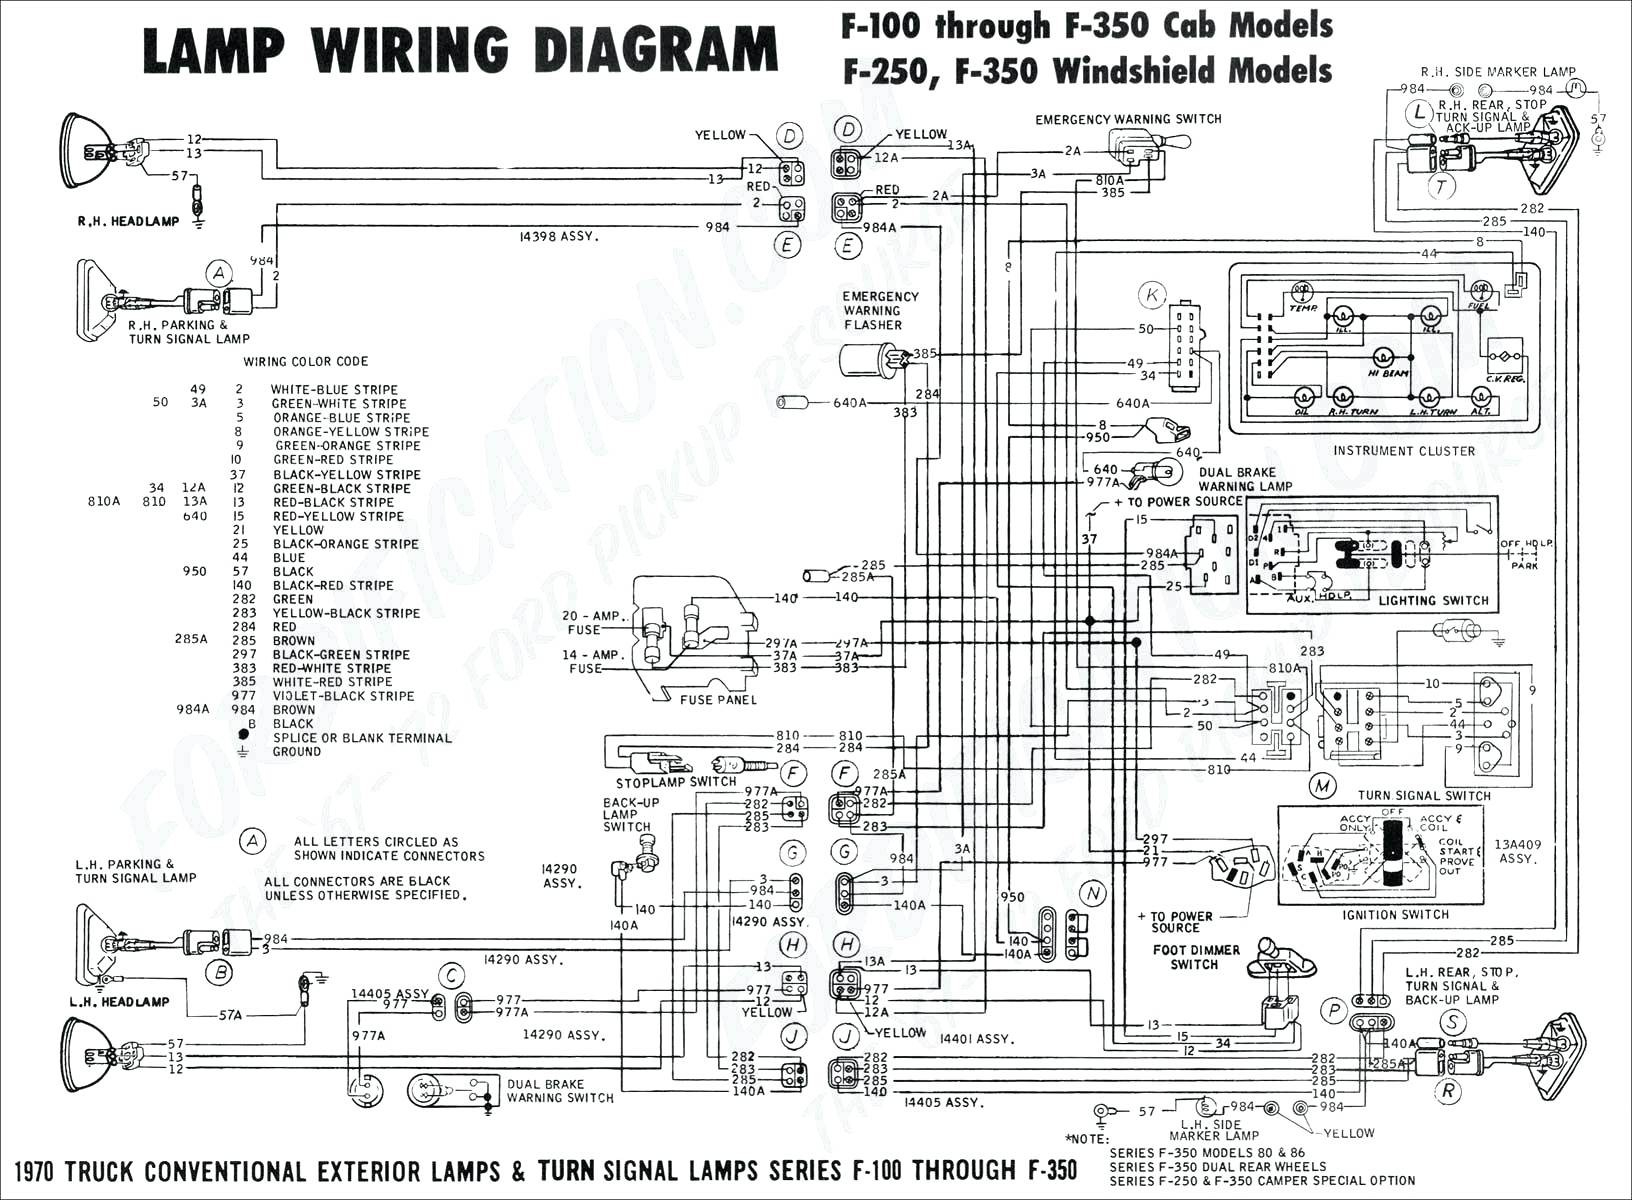 Fine Channel Master Rotor Wiring Diagram Model